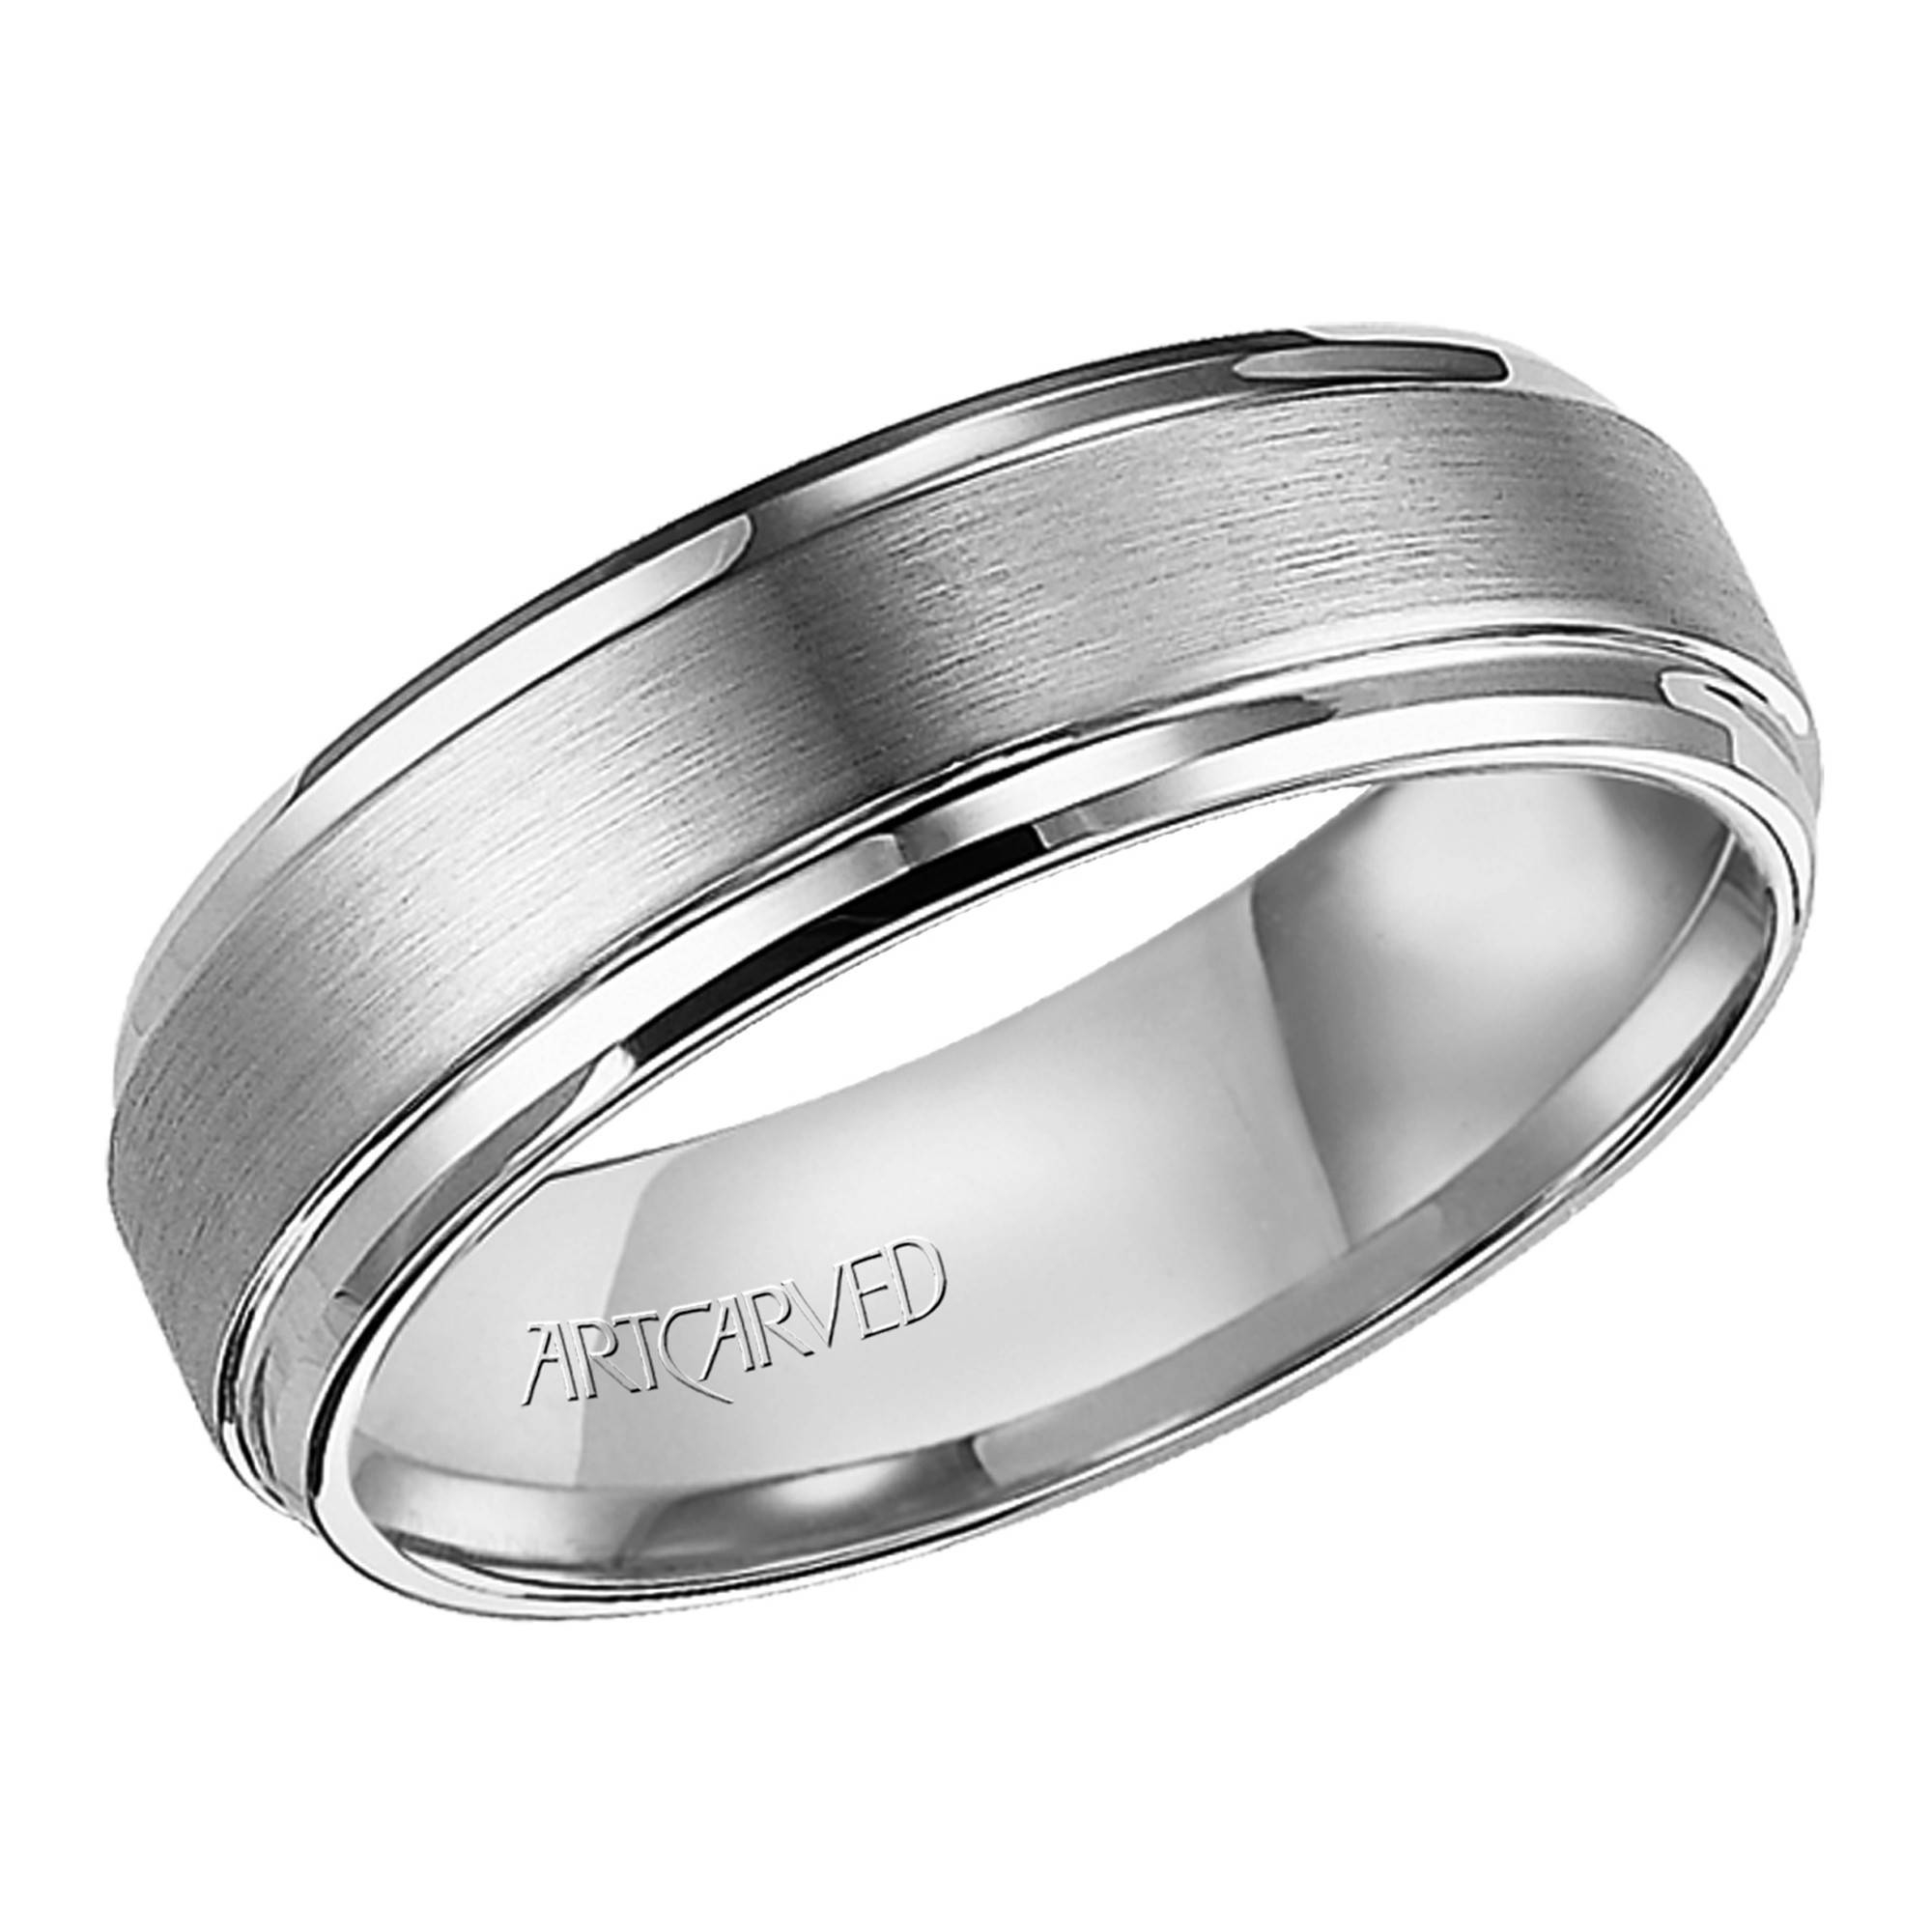 Artcarved Mens Exquisite Carved Wedding Band In Tungsten Carbide (7Mm) In 7Mm Titanium Wedding Bands (View 3 of 15)